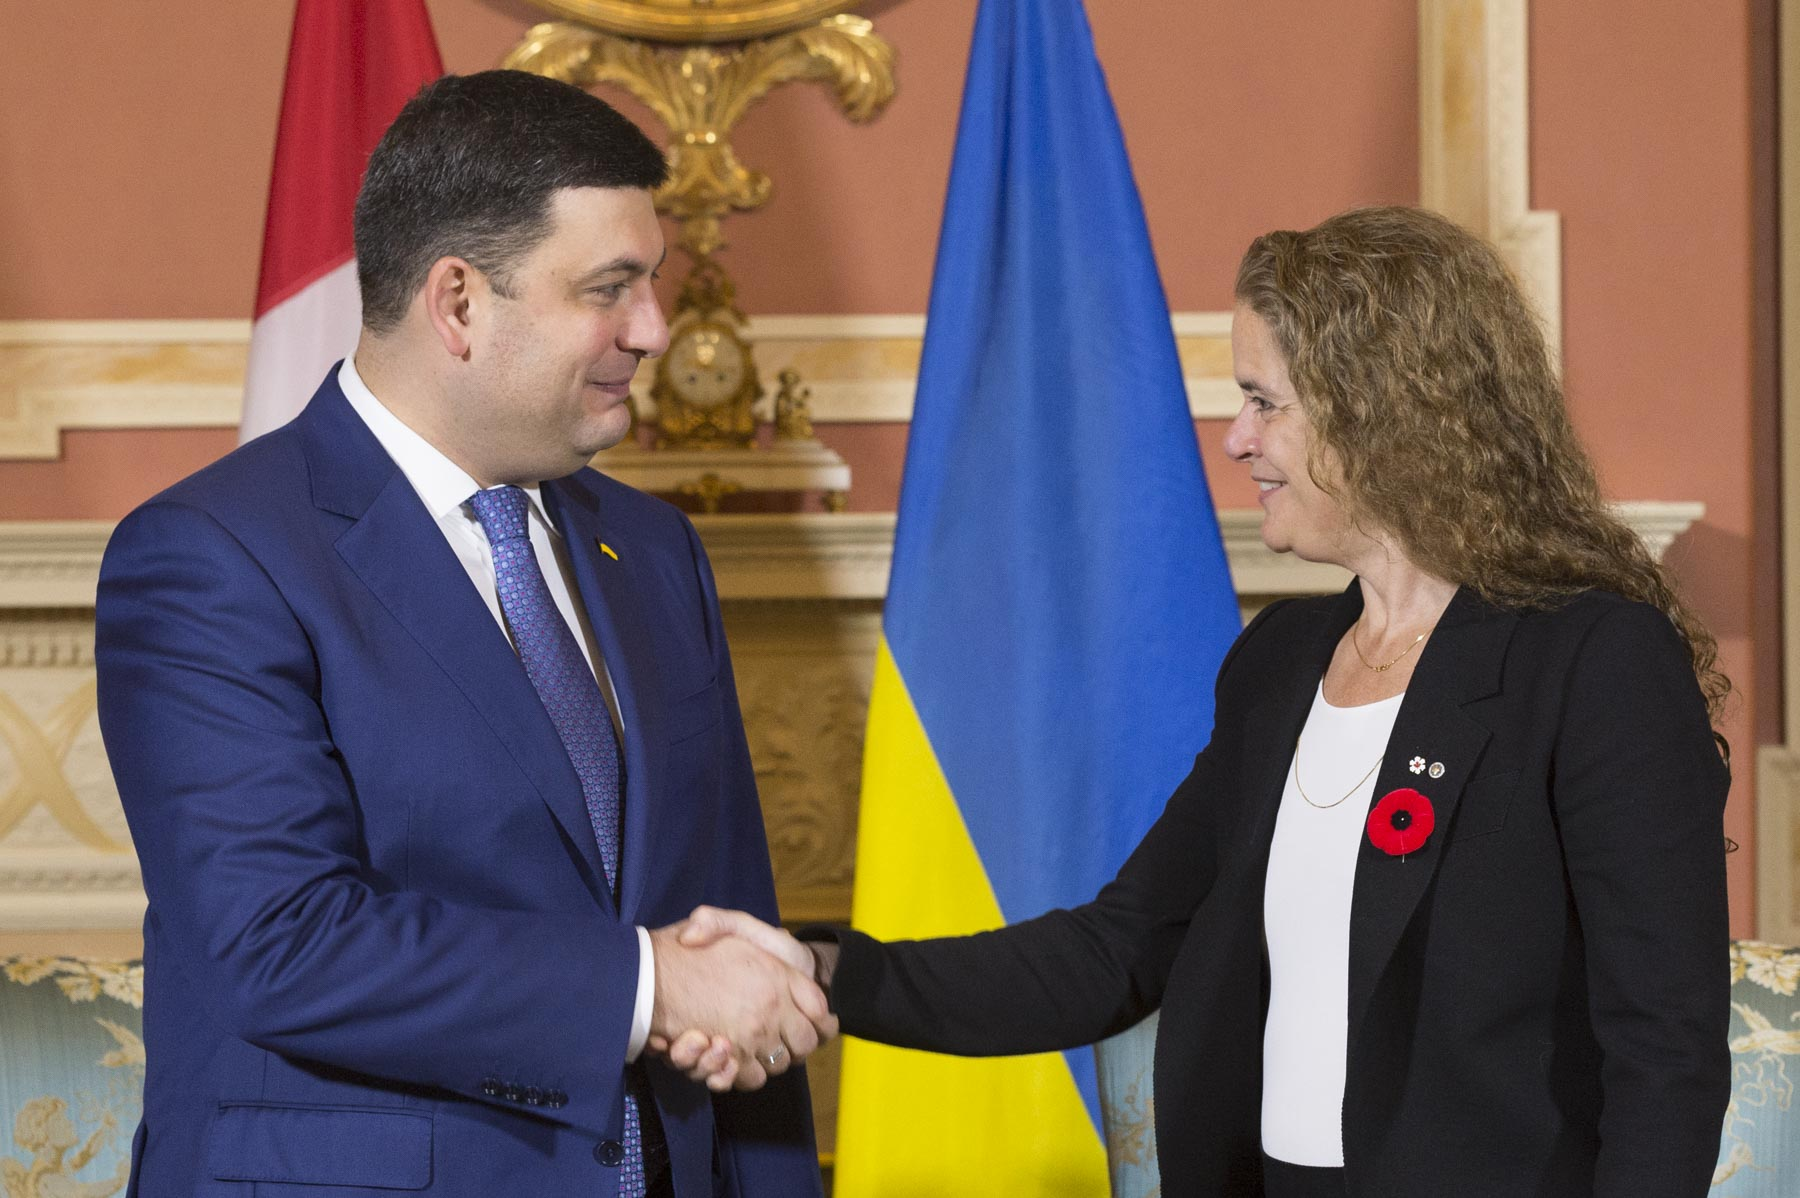 Her Excellency the Right Honourable Julie Payette, Governor General of Canada, met with His Excellency Volodymyr Groysman, Prime Minister of Ukraine, at Rideau Hall.